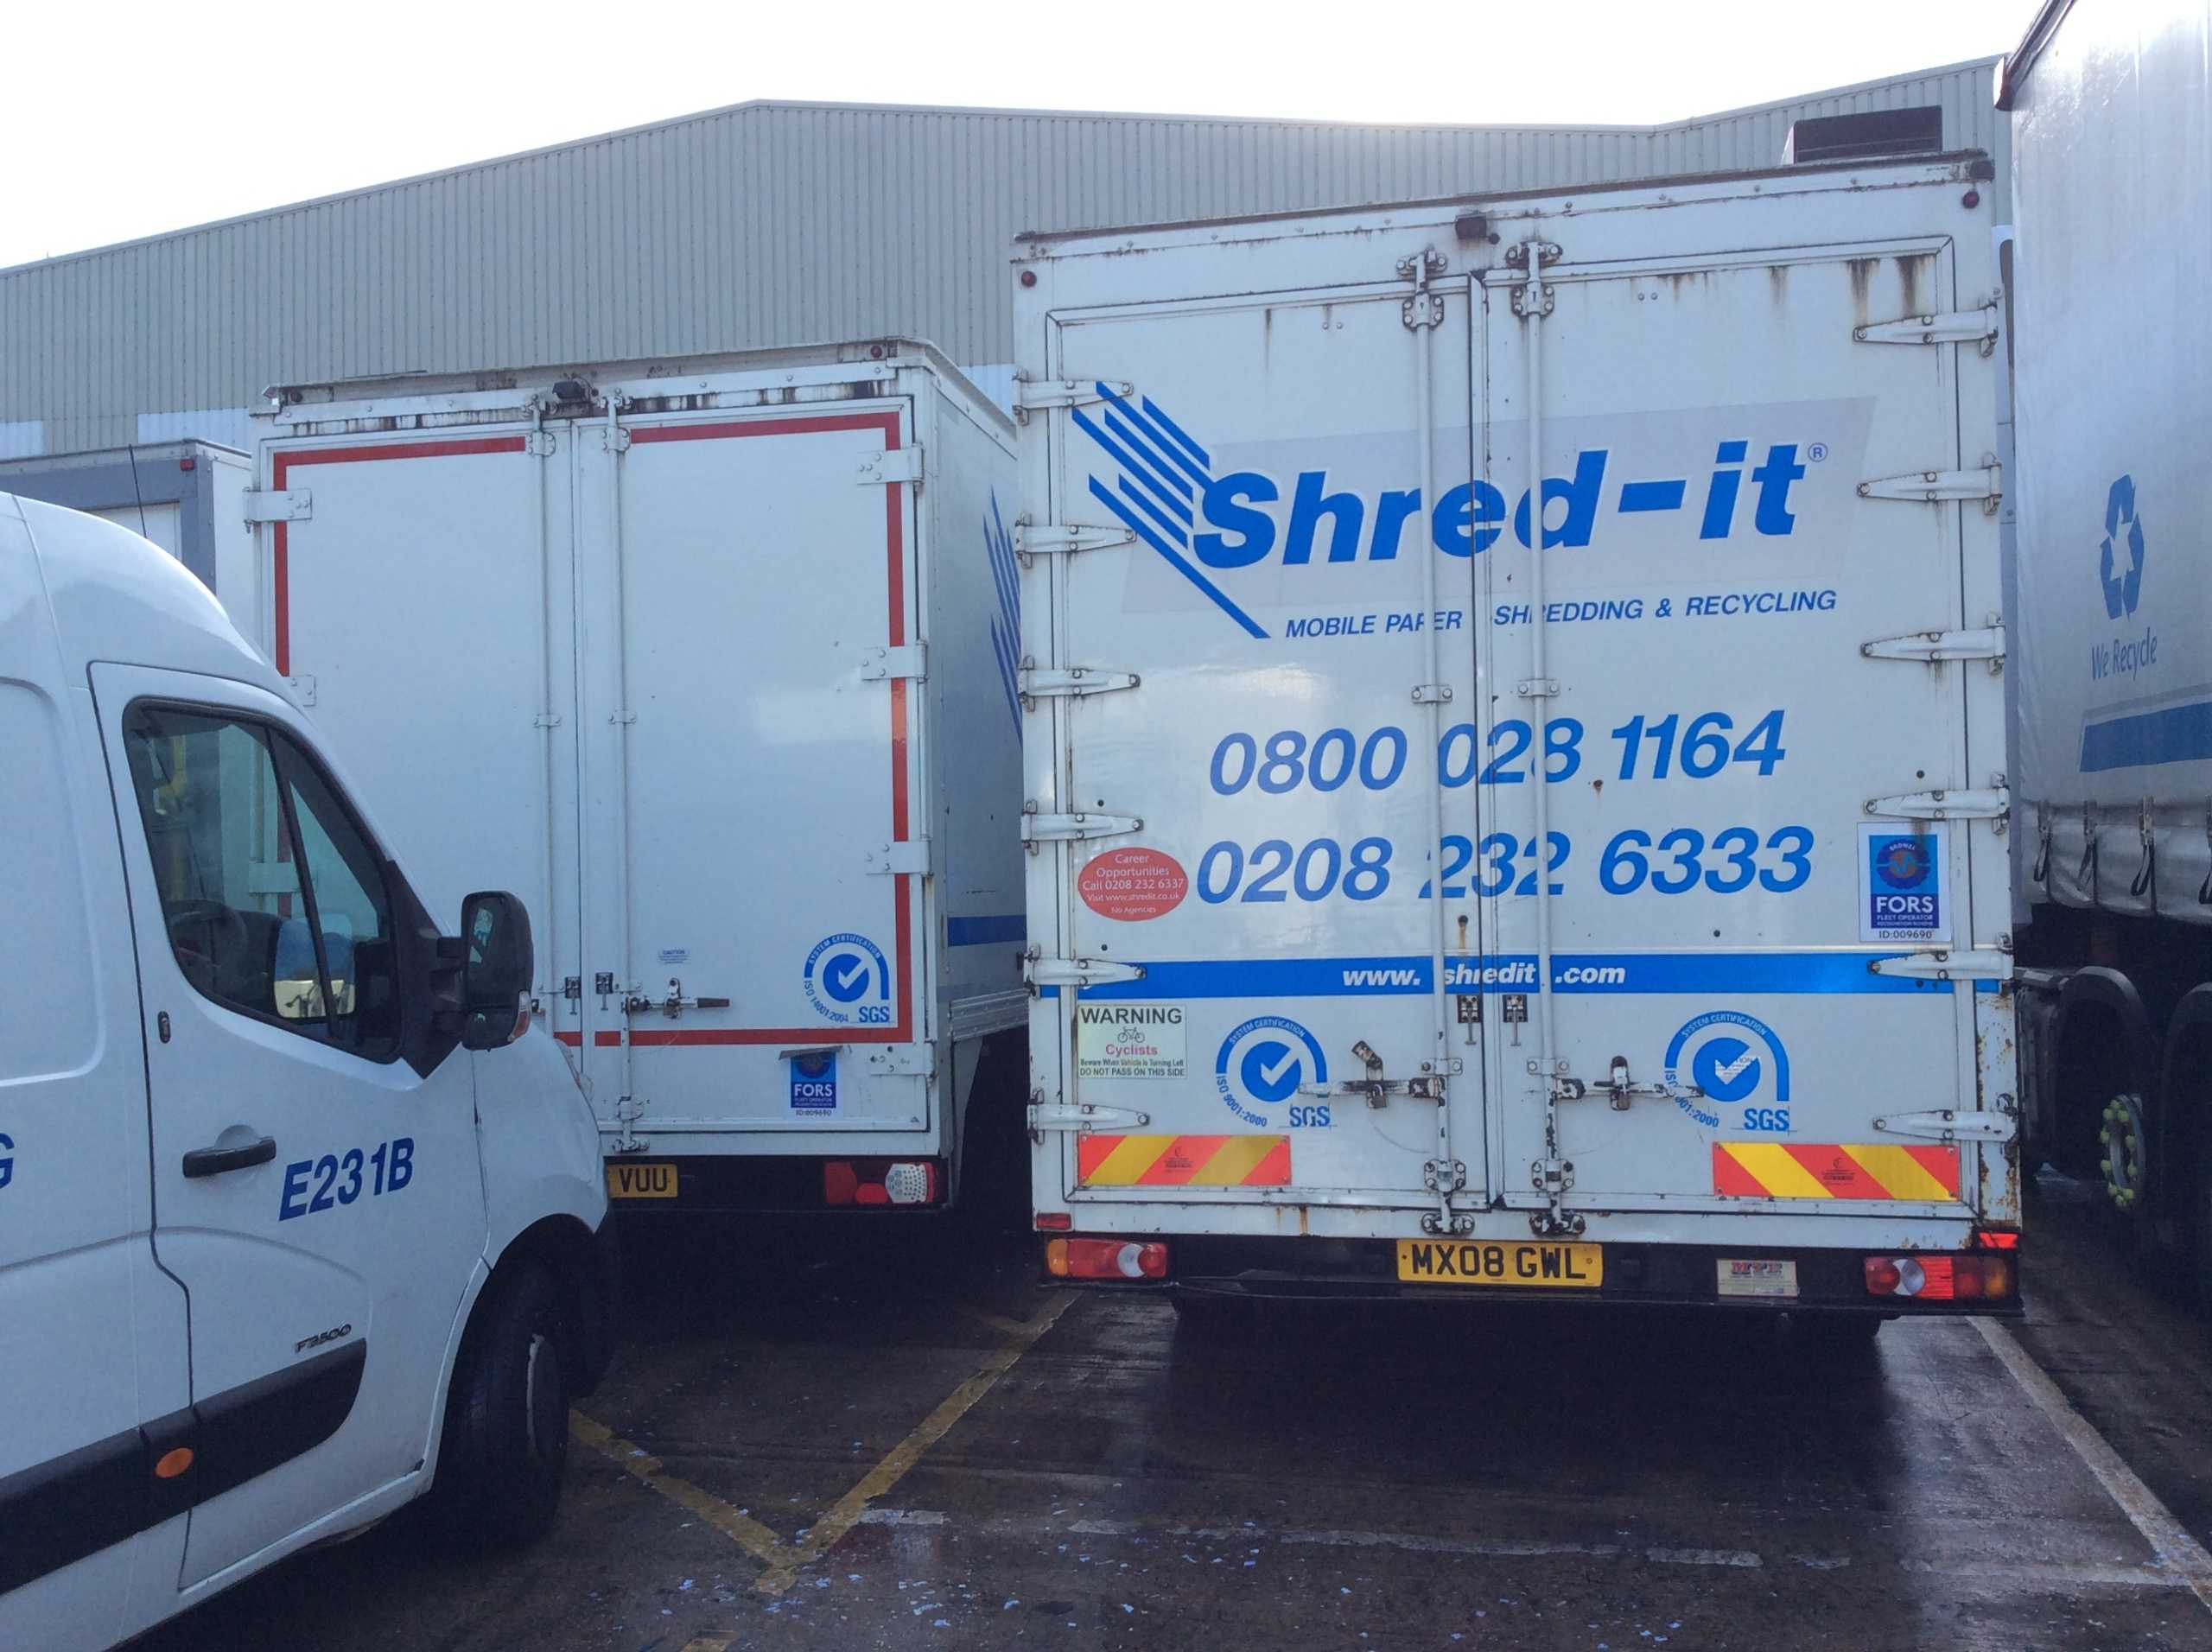 Commercial Vehicle Cleaning Shred-it